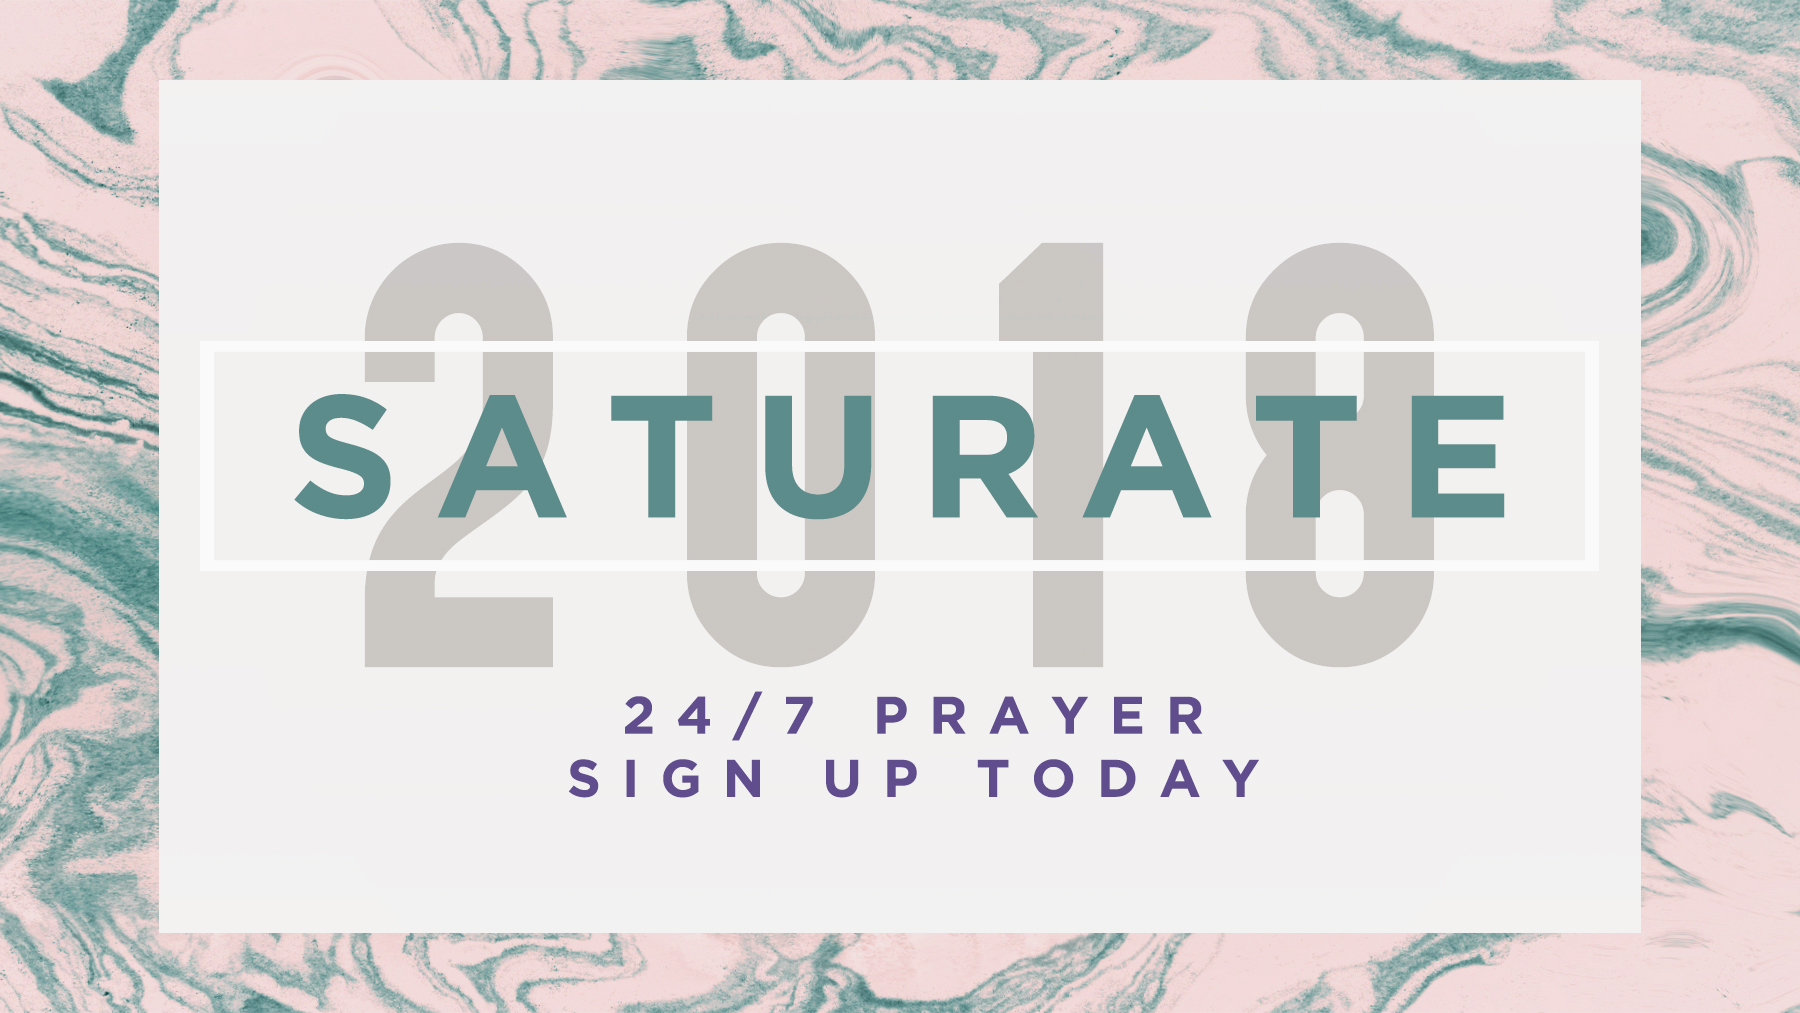 Saturate 2018_5 (fixed resolution).jpg